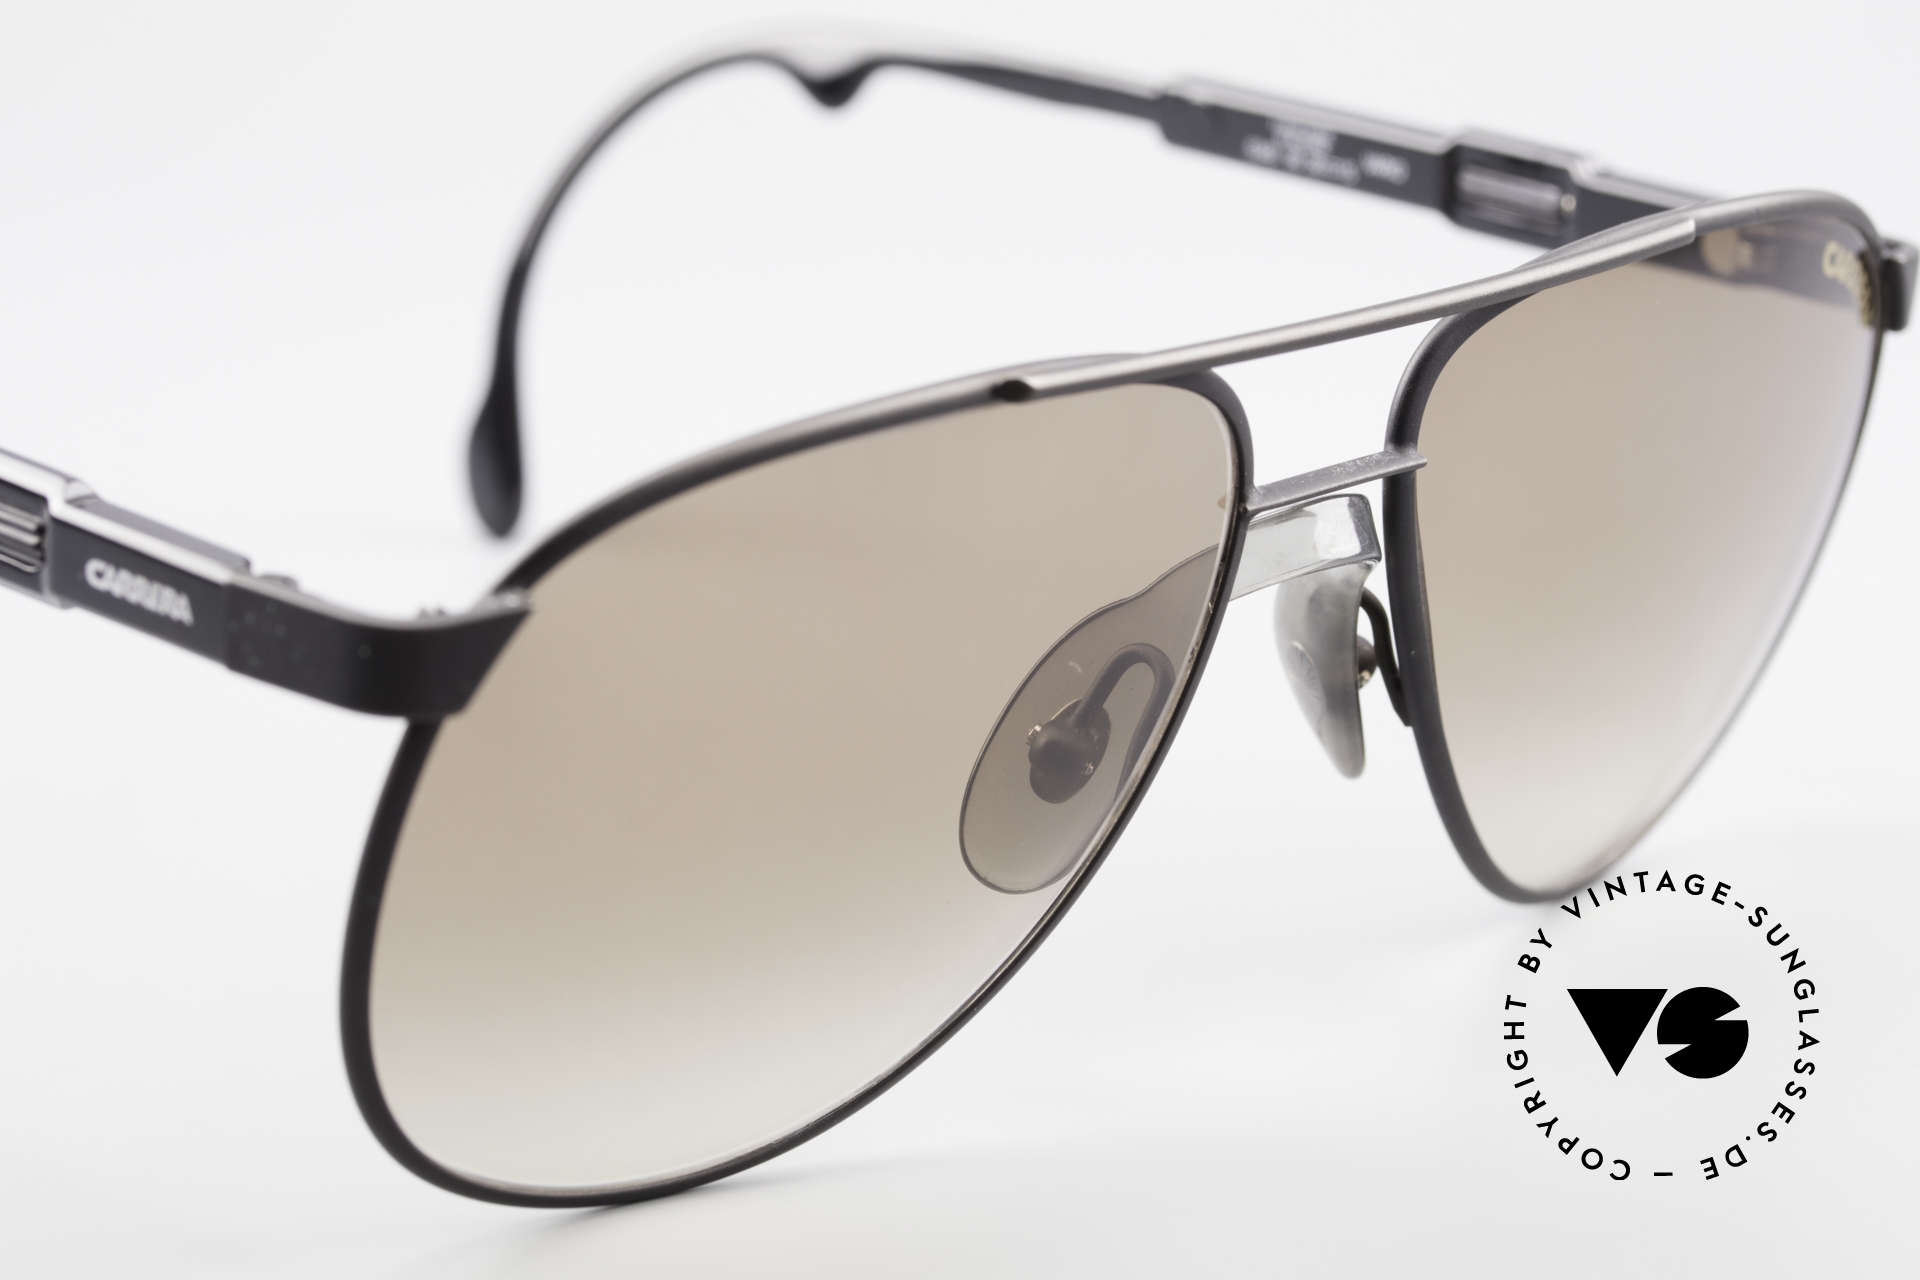 Carrera 5348 Vario Sports Sunglasses 80's, unworn, NOS (like all our vintage sports sunglasses), Made for Men and Women